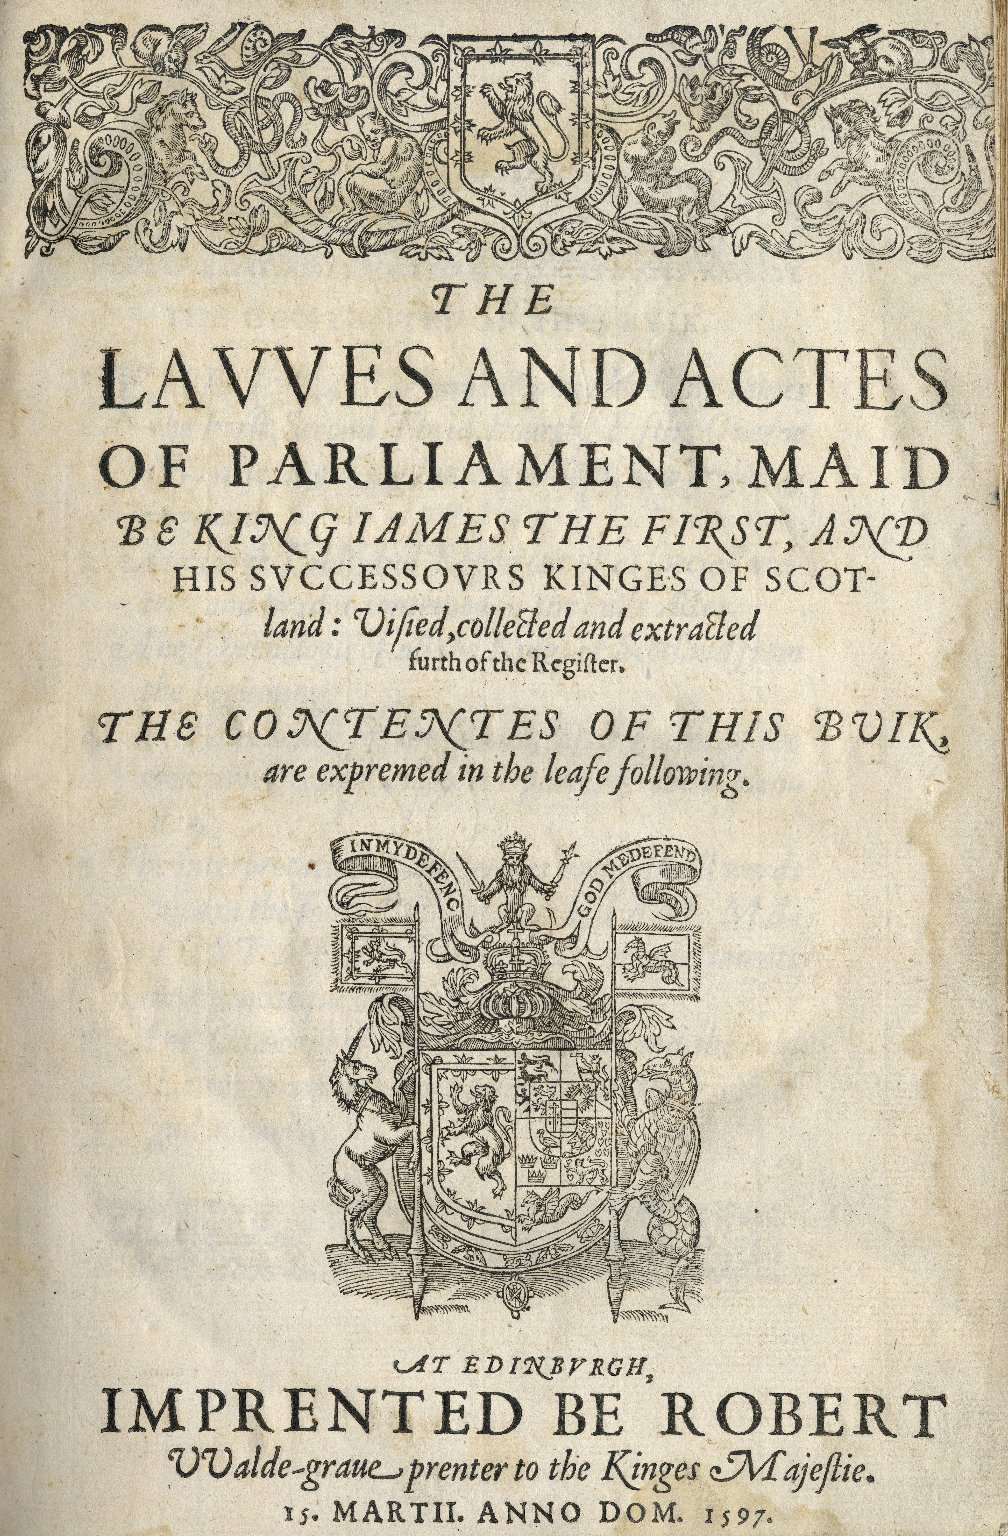 Scotland. The lavves and actes of Parliament, maid be King Iames the First. Edinburgh, 1597